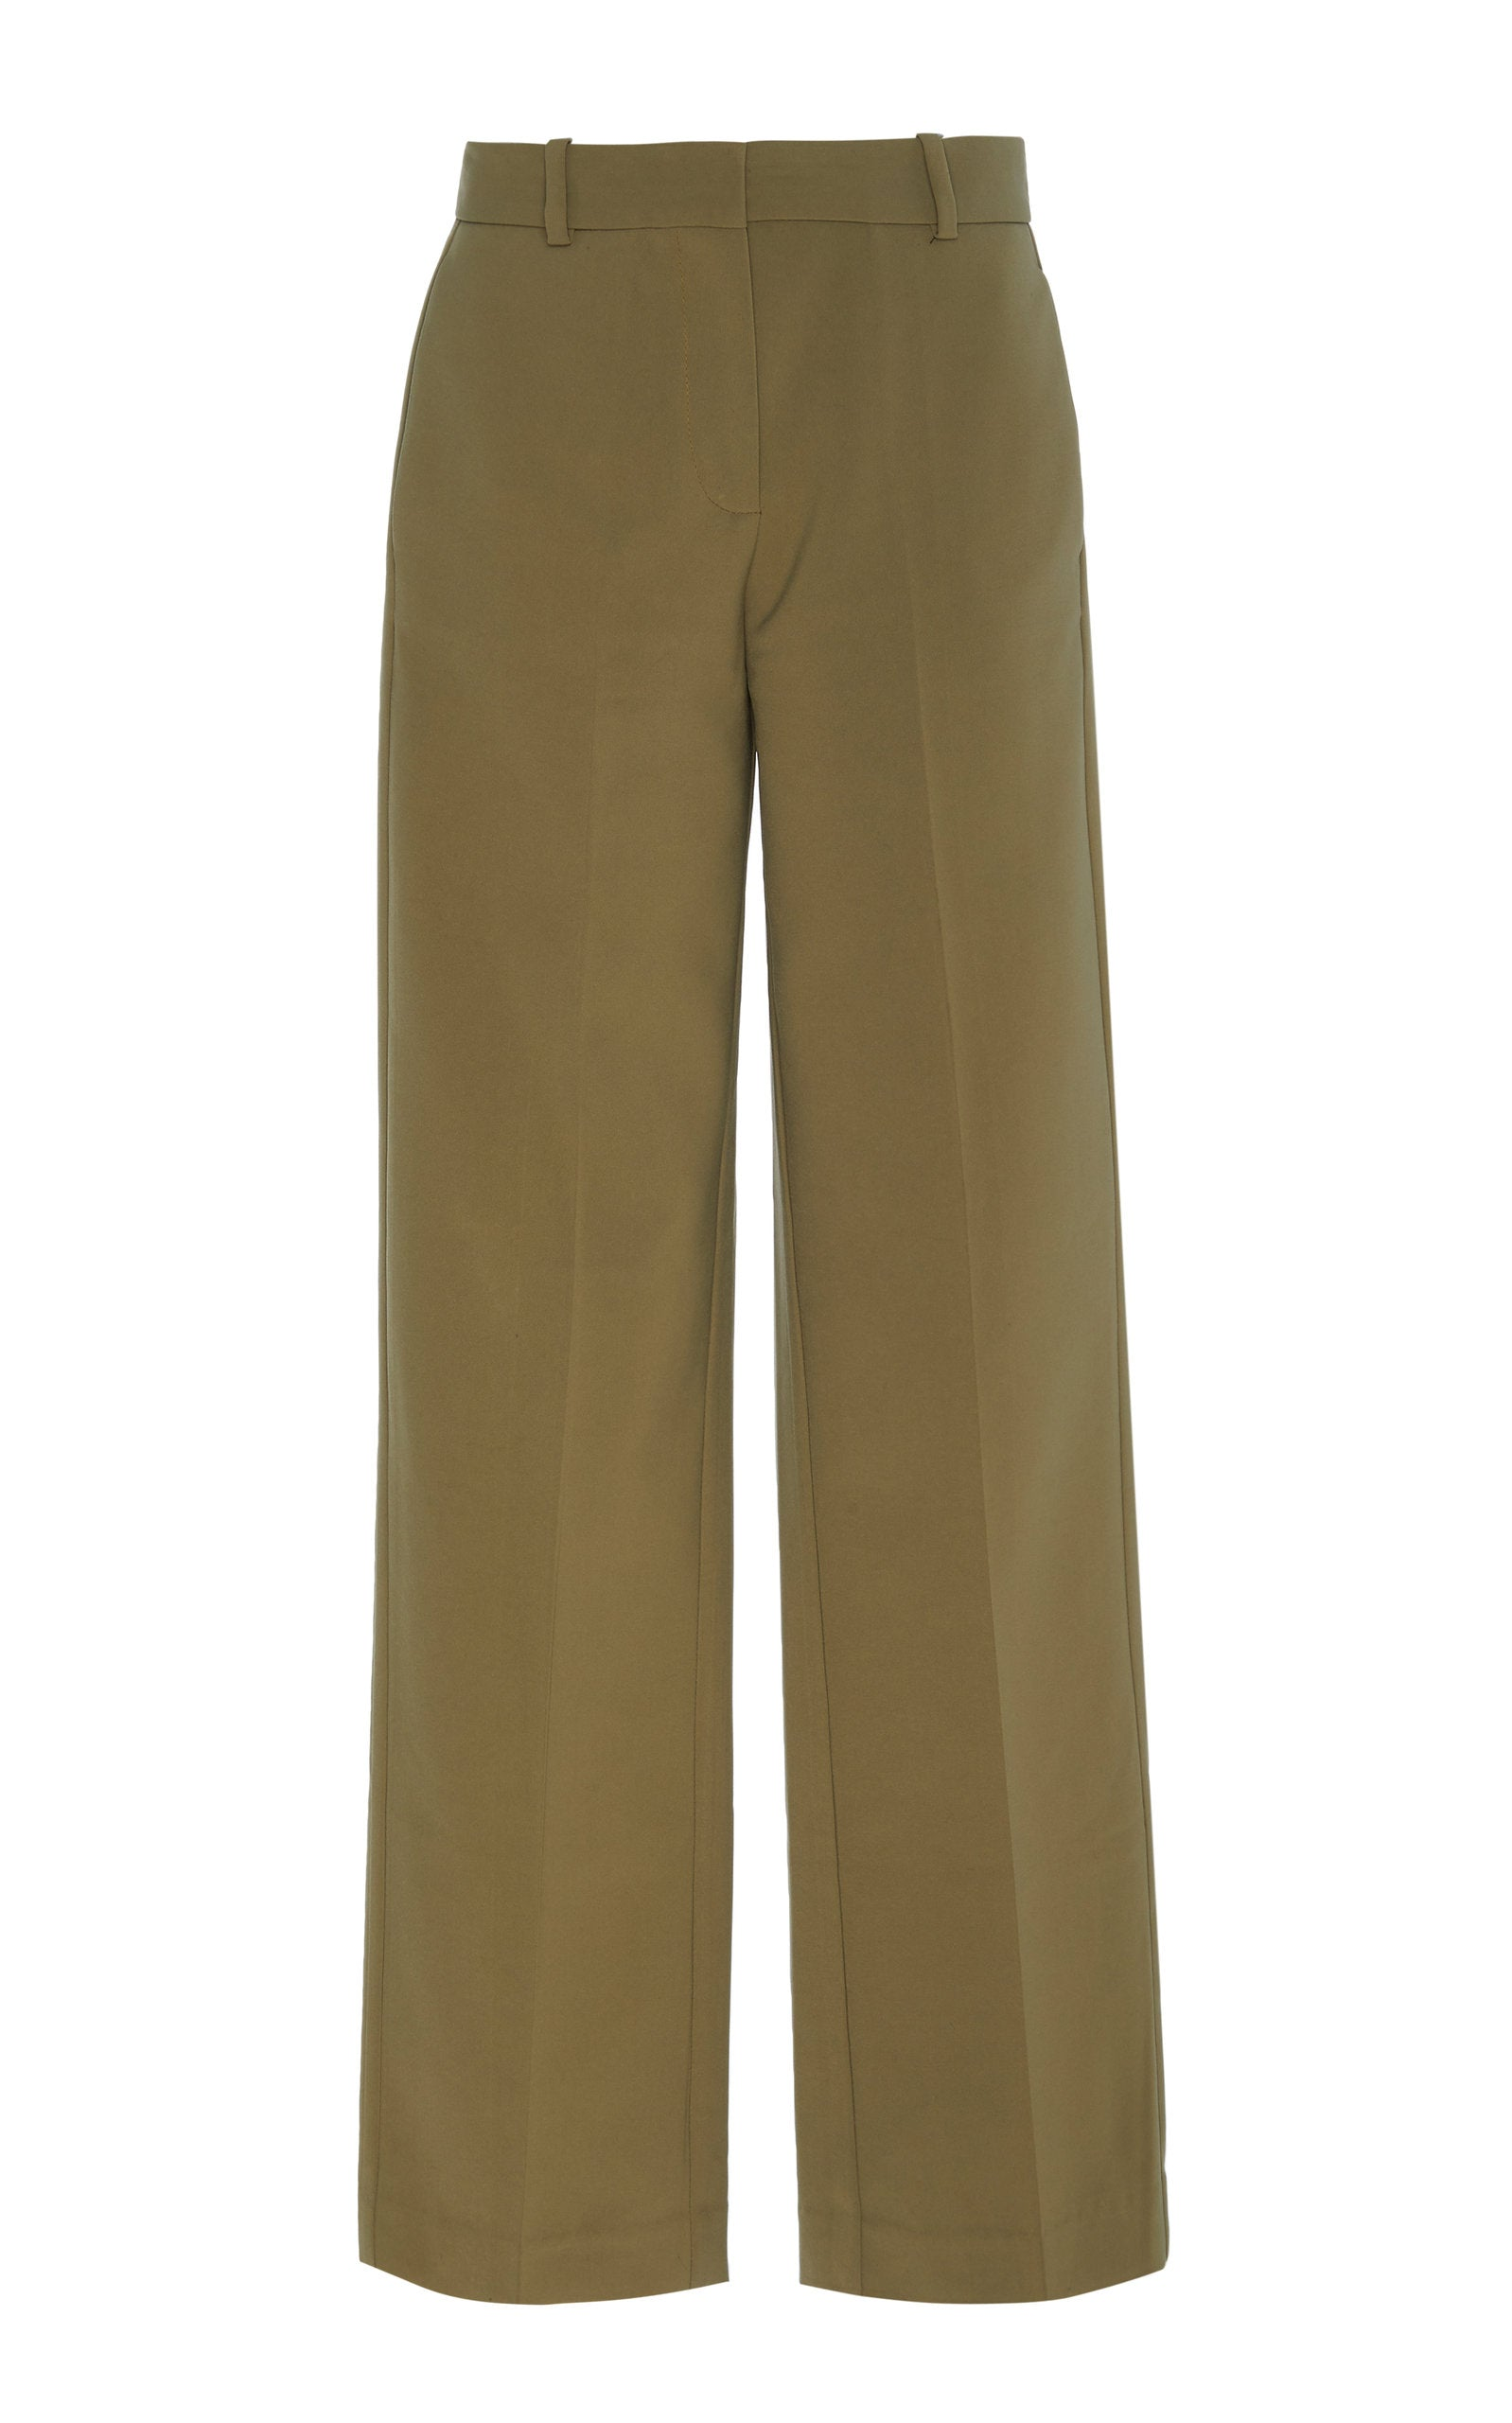 02 Basil Suit Trousers | Dawn Grey